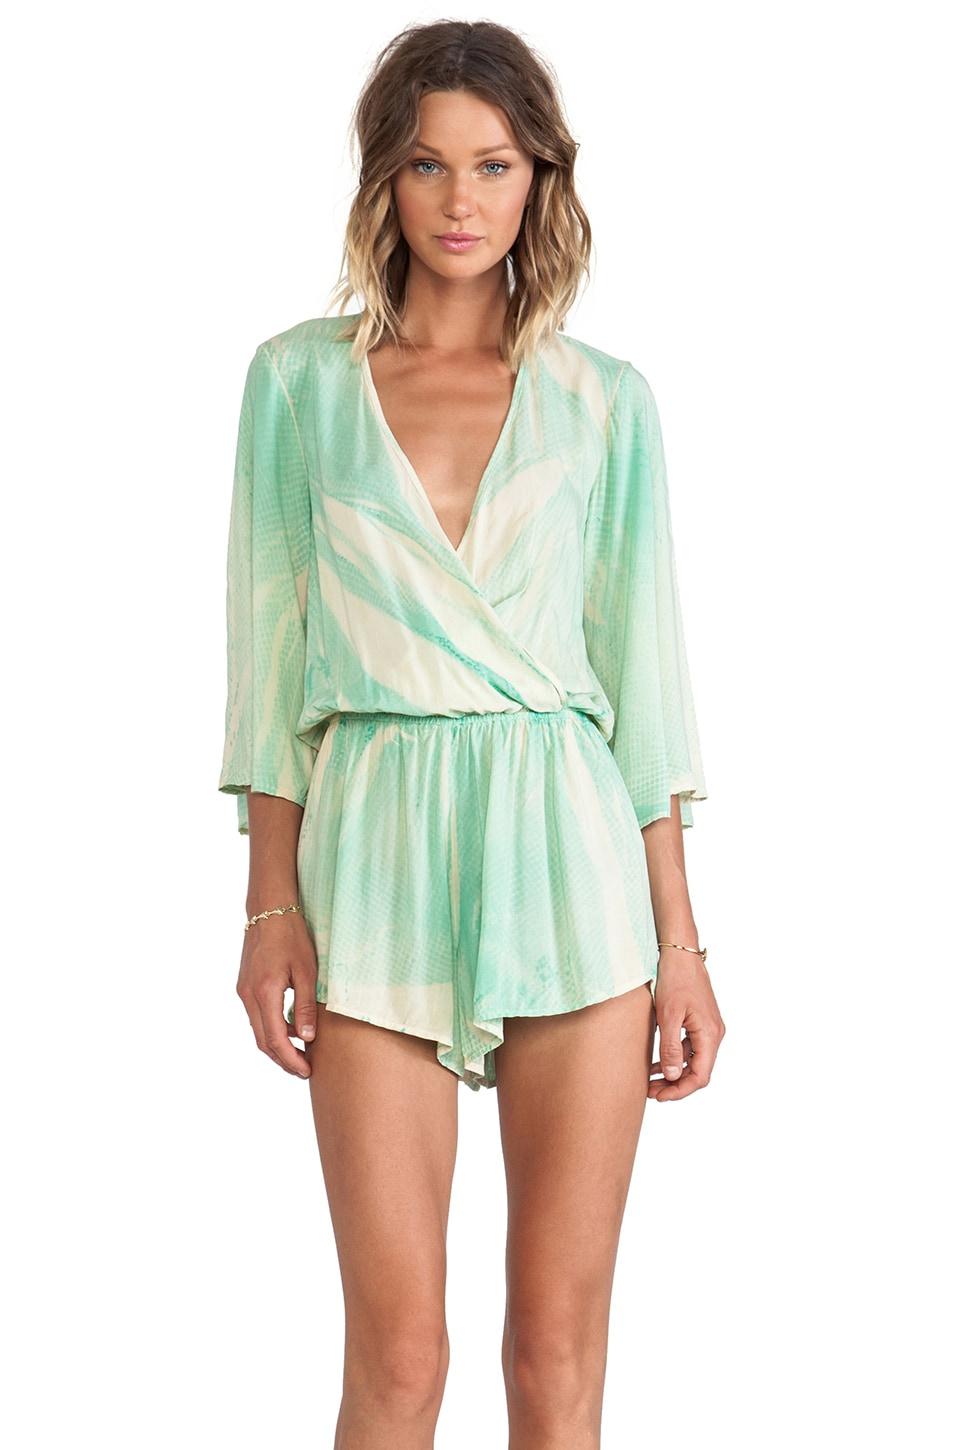 Blue Life Wild and Free Romper in Sea Snake